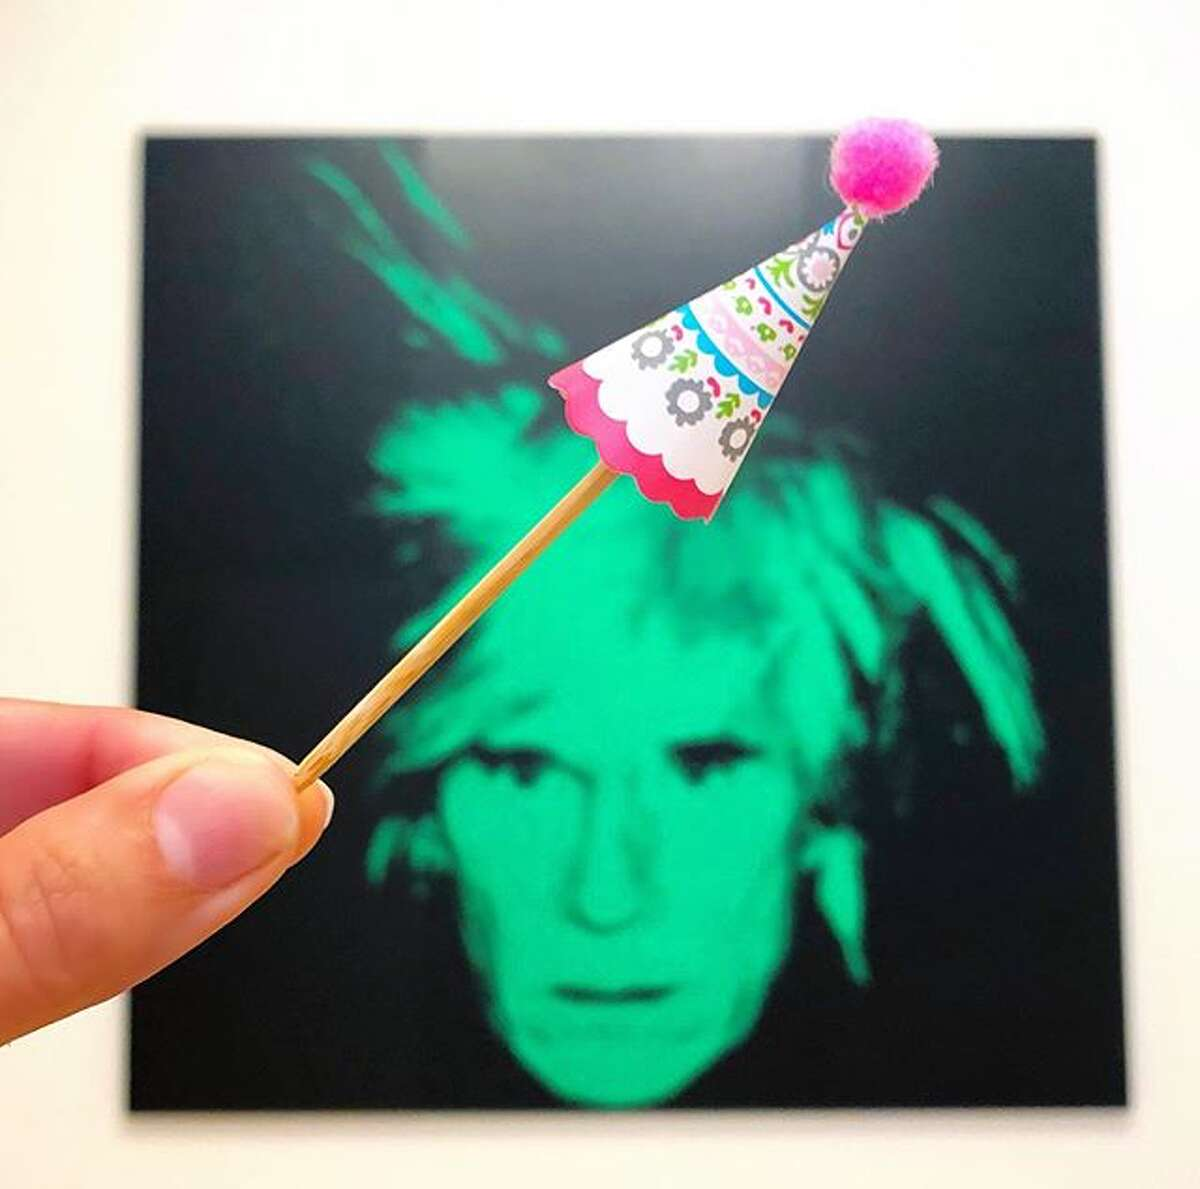 @jacolynmurphydesigns wishes Andy Warhol a happy birthday during his exhibit at the SFMOMA.